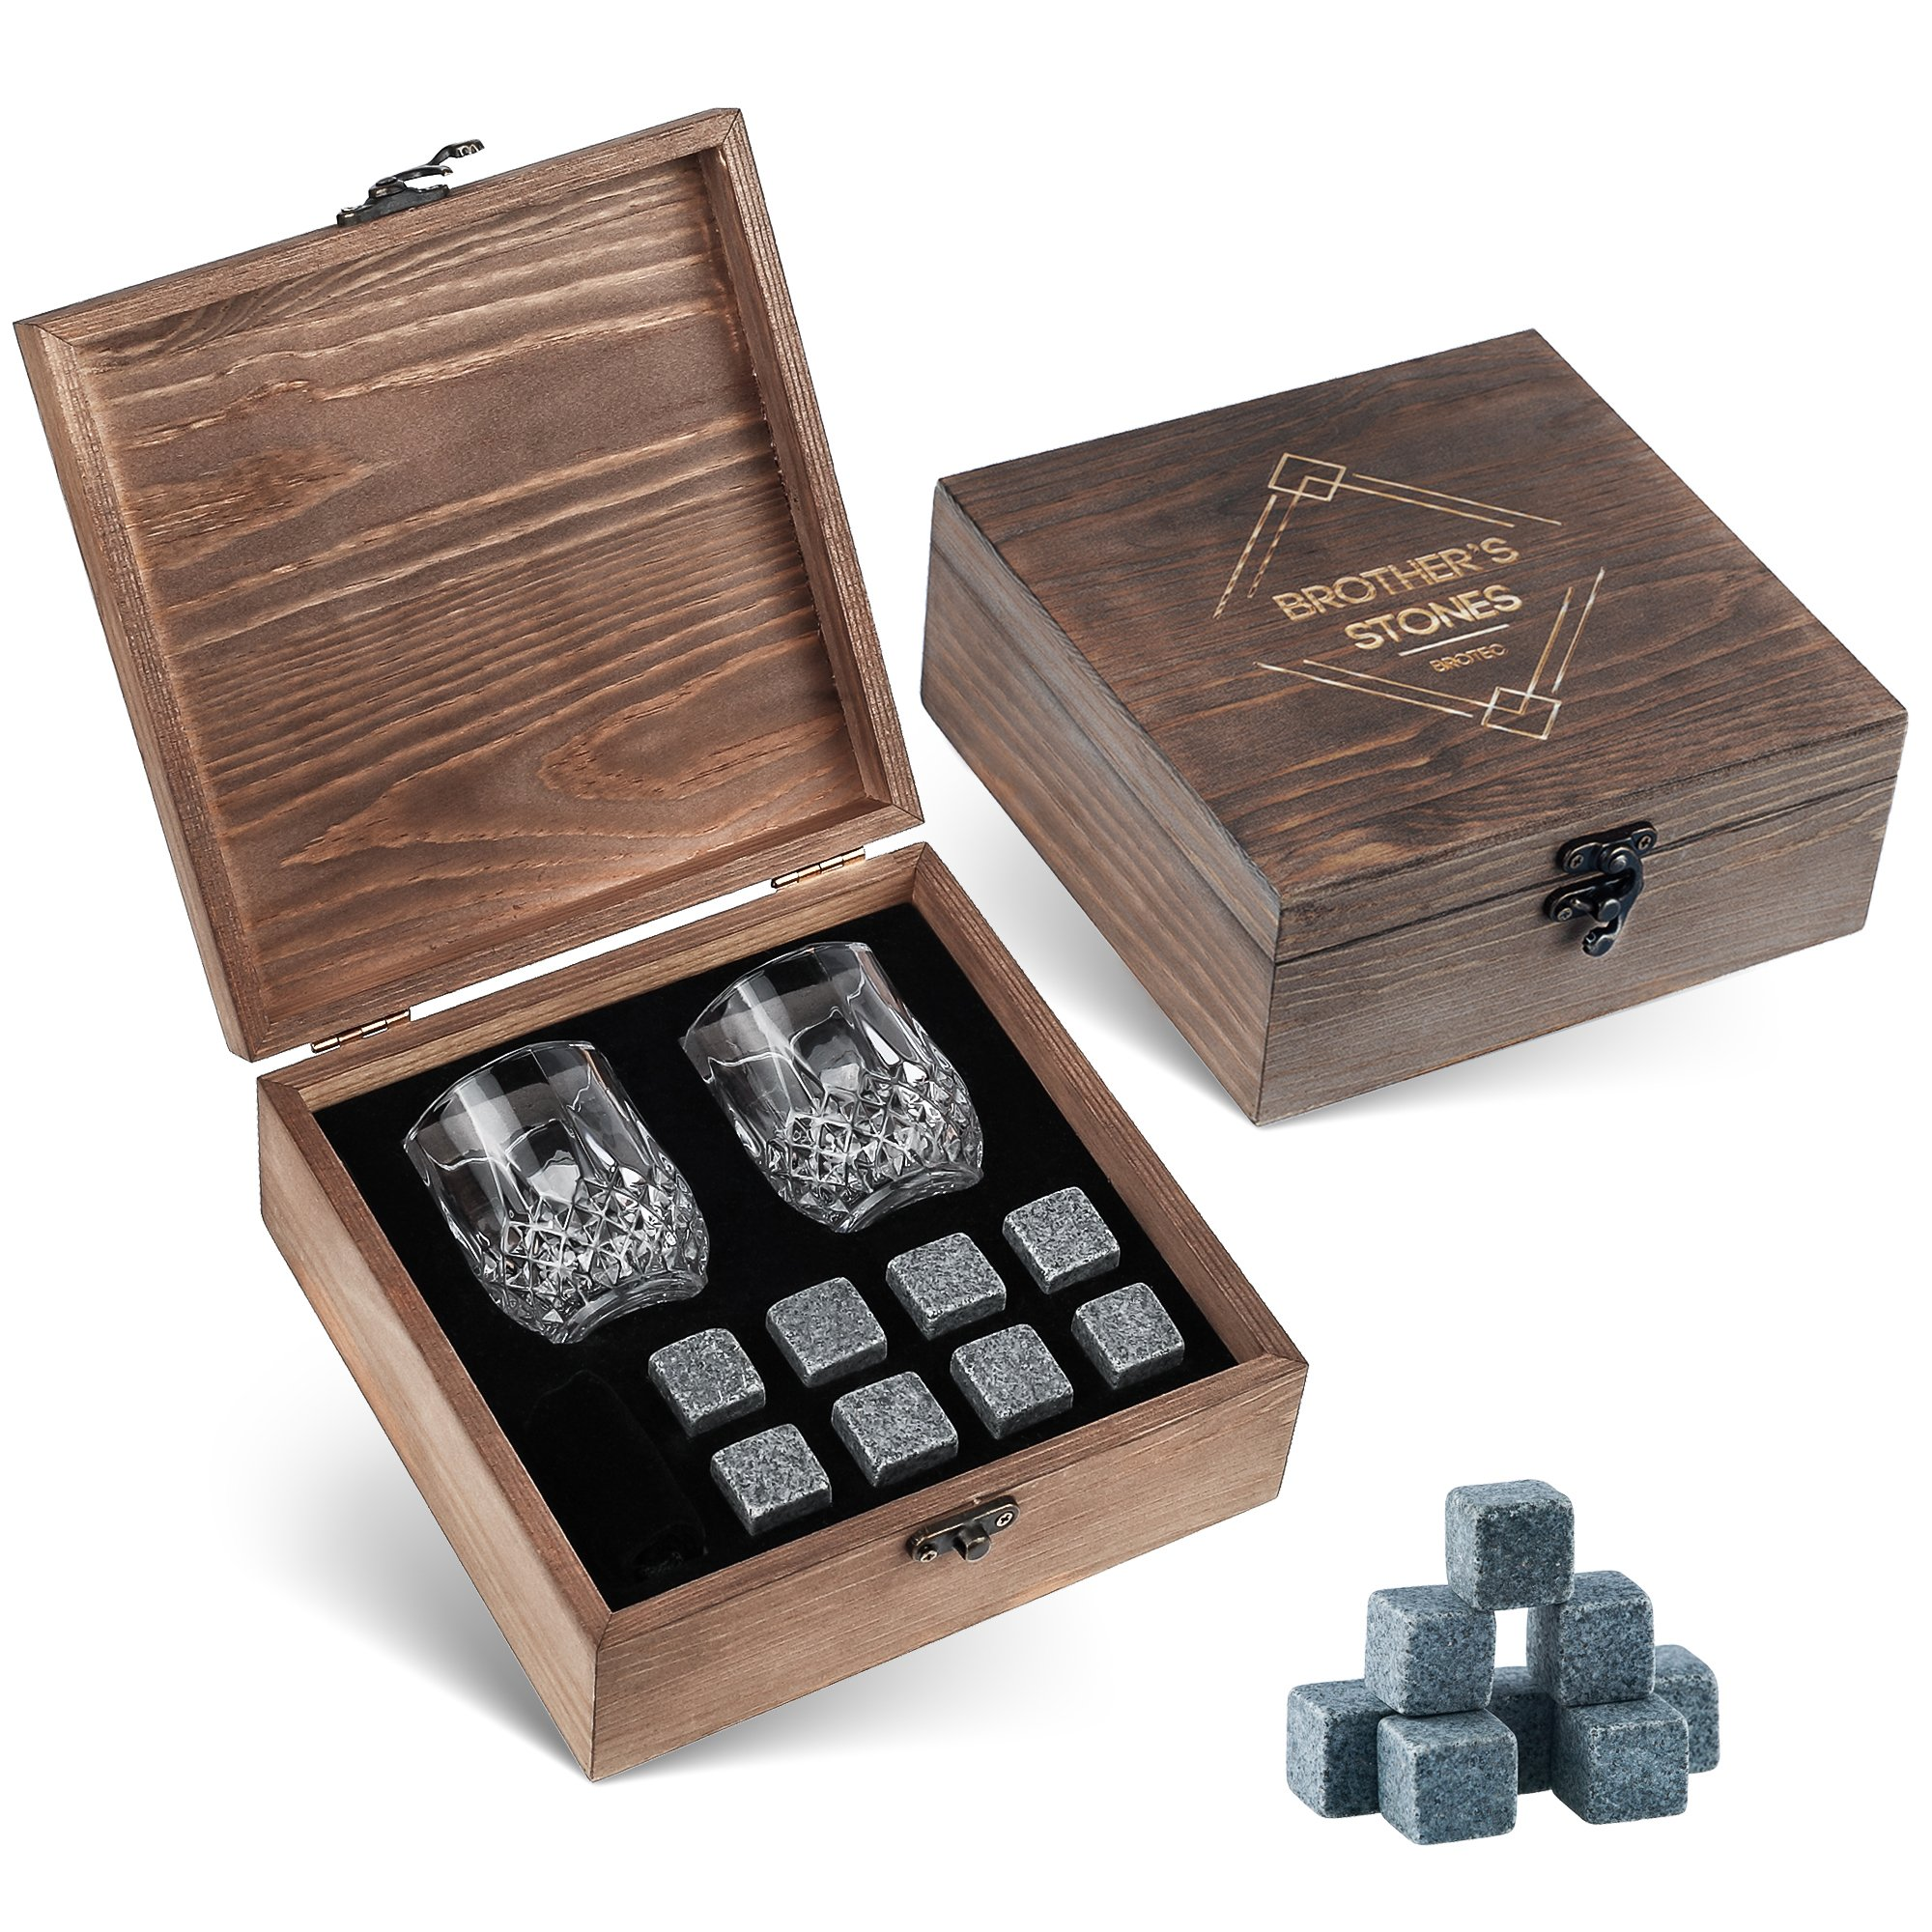 Whiskey Stones Gift Set - 8 Granite Chilling Whisky Rocks - 2 Crystal Shot Glasses in Wooden Box - Premium Bar Accessories for the Best Tasting Beverages by BROTEC by BROTEC